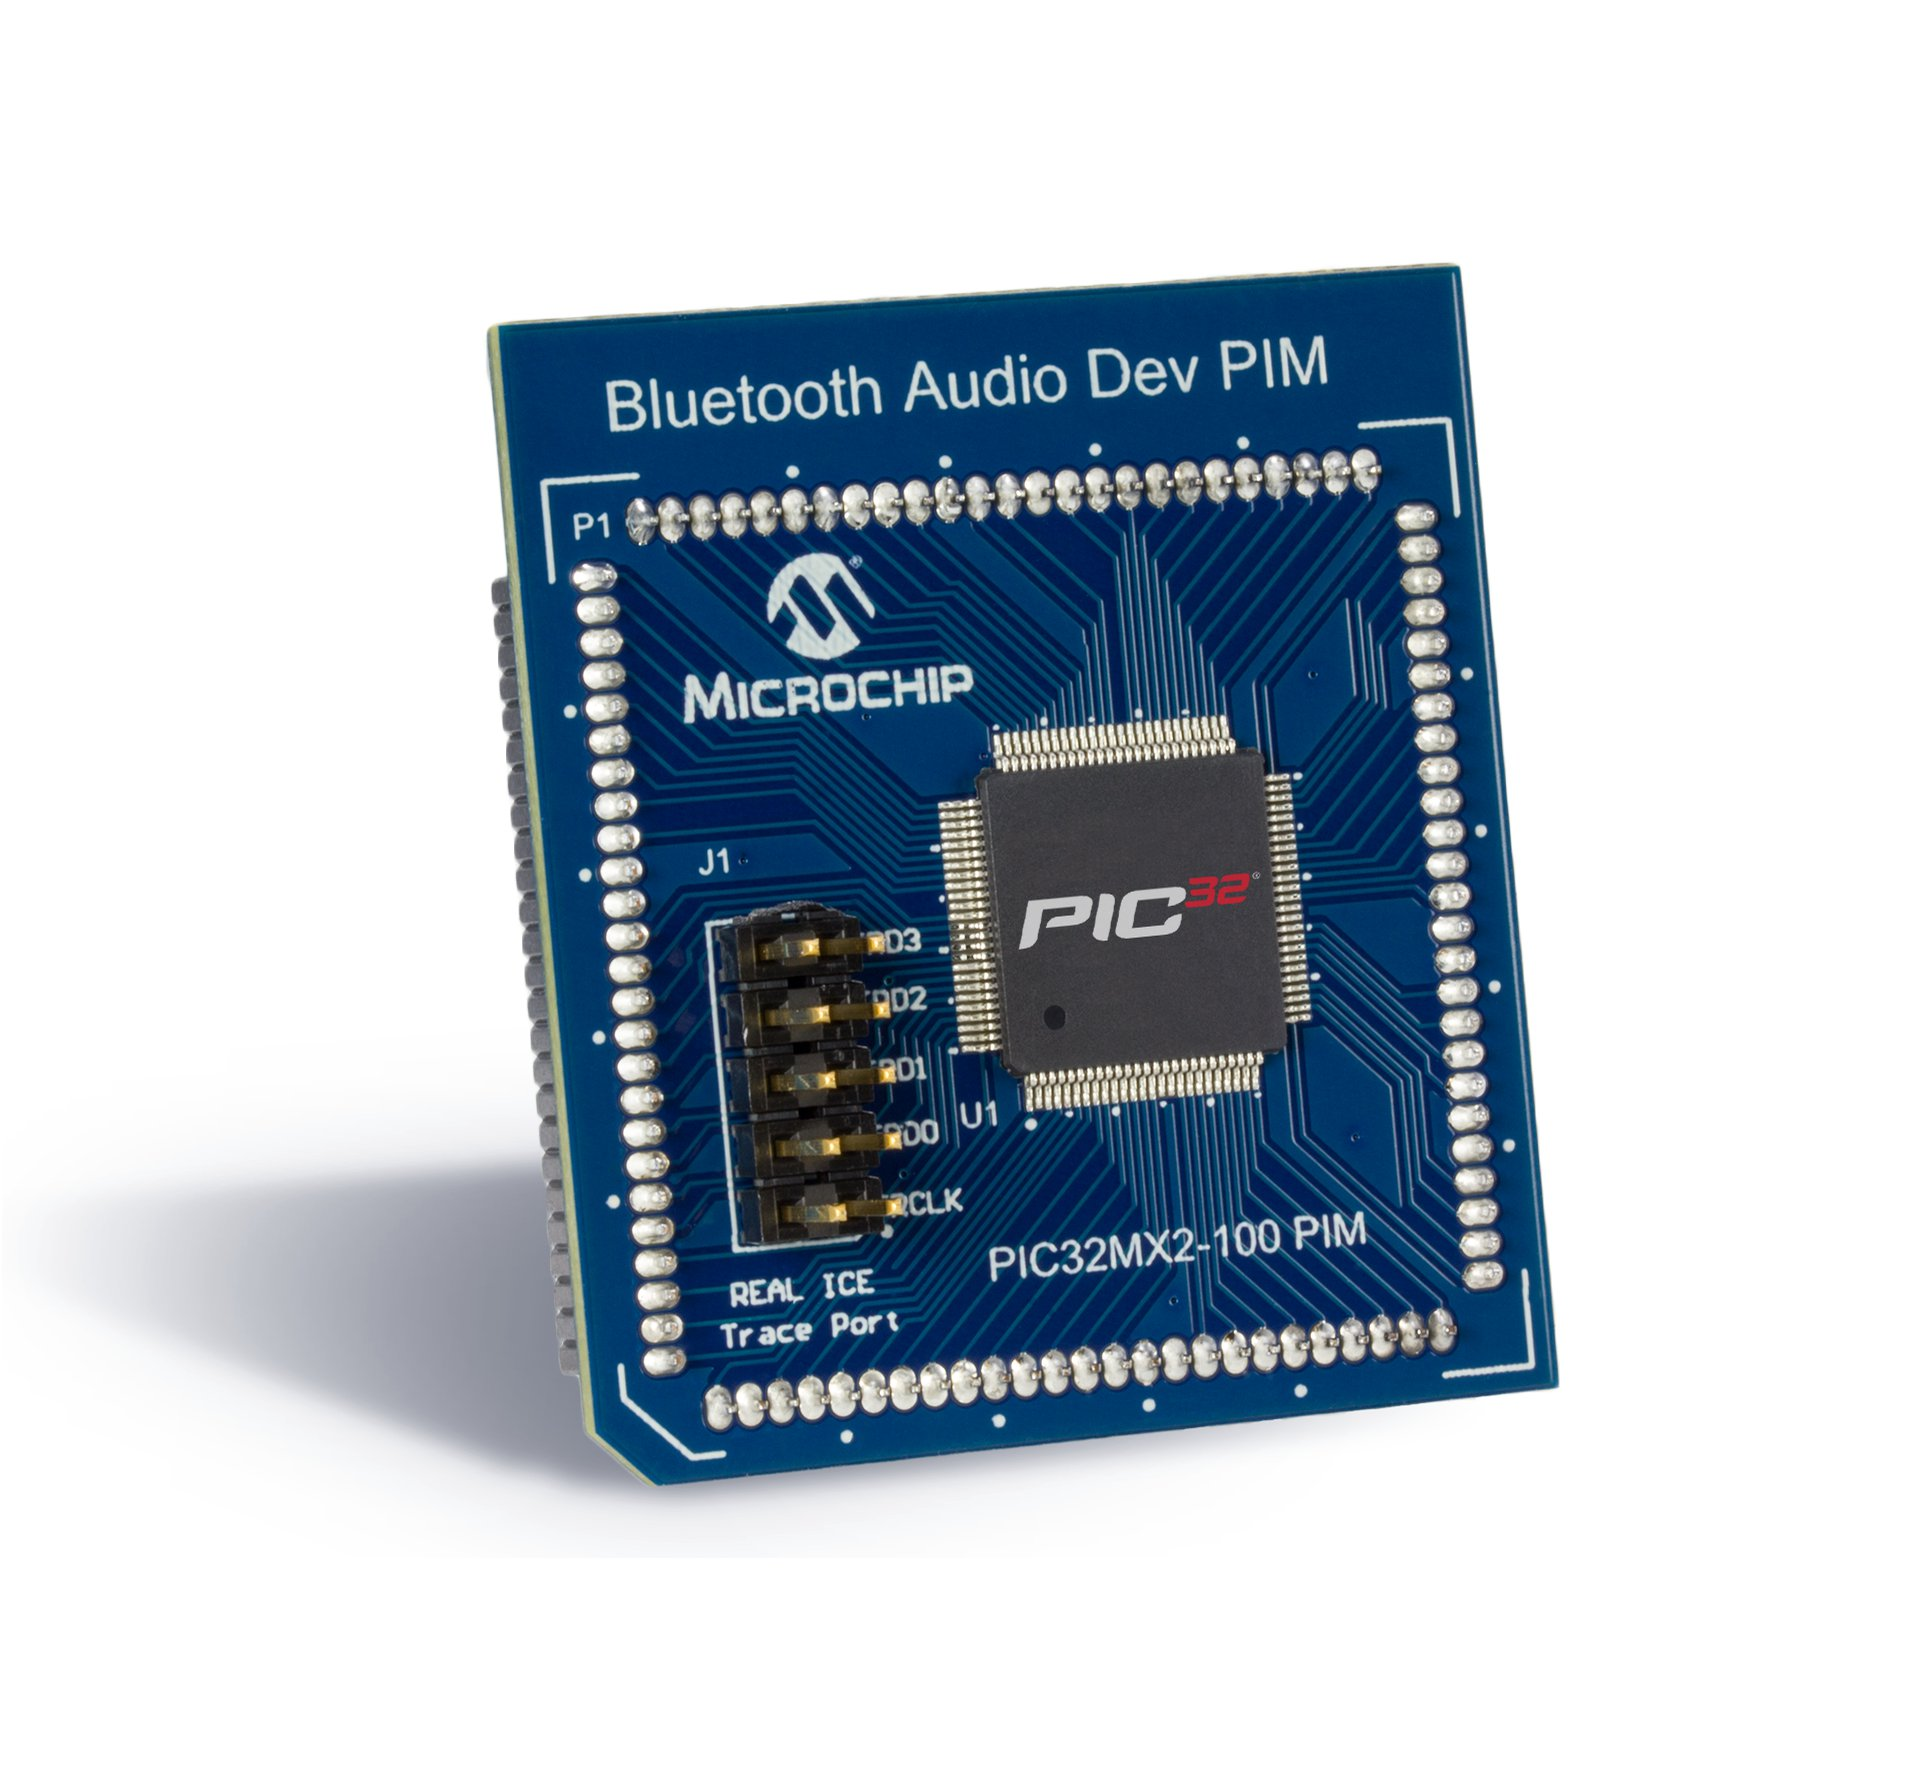 Development Tools 256 Tap Digitally Potentiometers Capabilities Of The Pic32mx Xlp Family Devices Using Pic32 Bluetooth Audio Kit It Enables And Digital